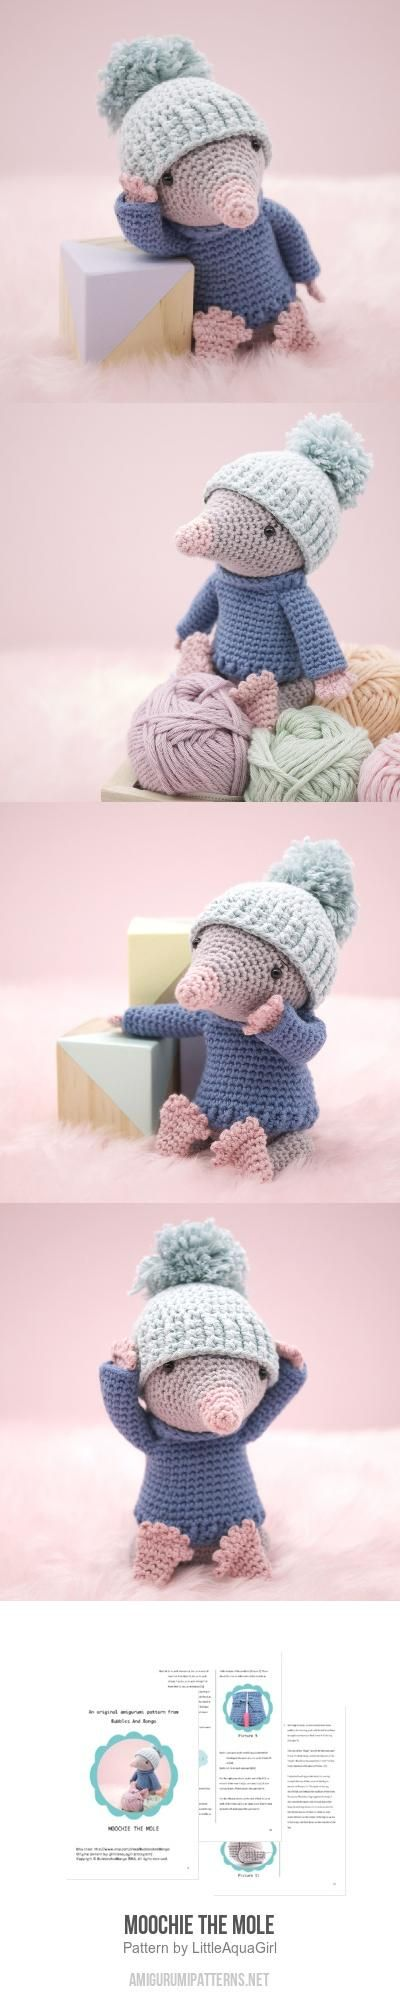 Moochie The Mole Amigurumi Pattern